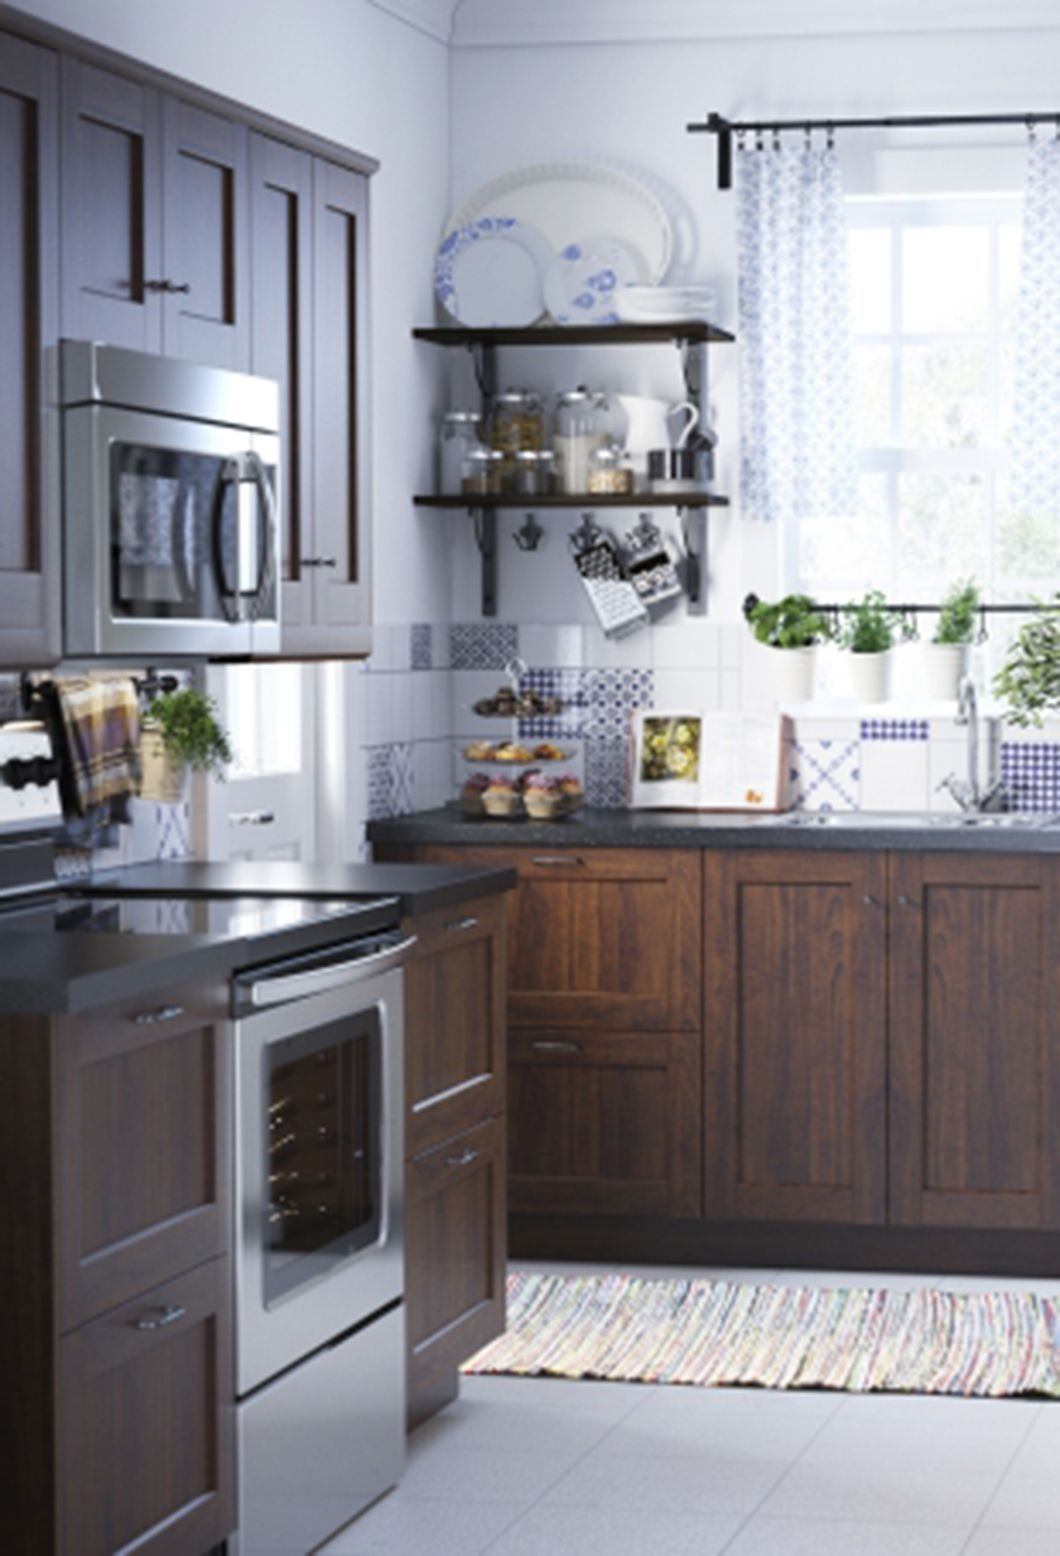 US - Furniture and Home Furnishings | Home decor, Kitchen ...